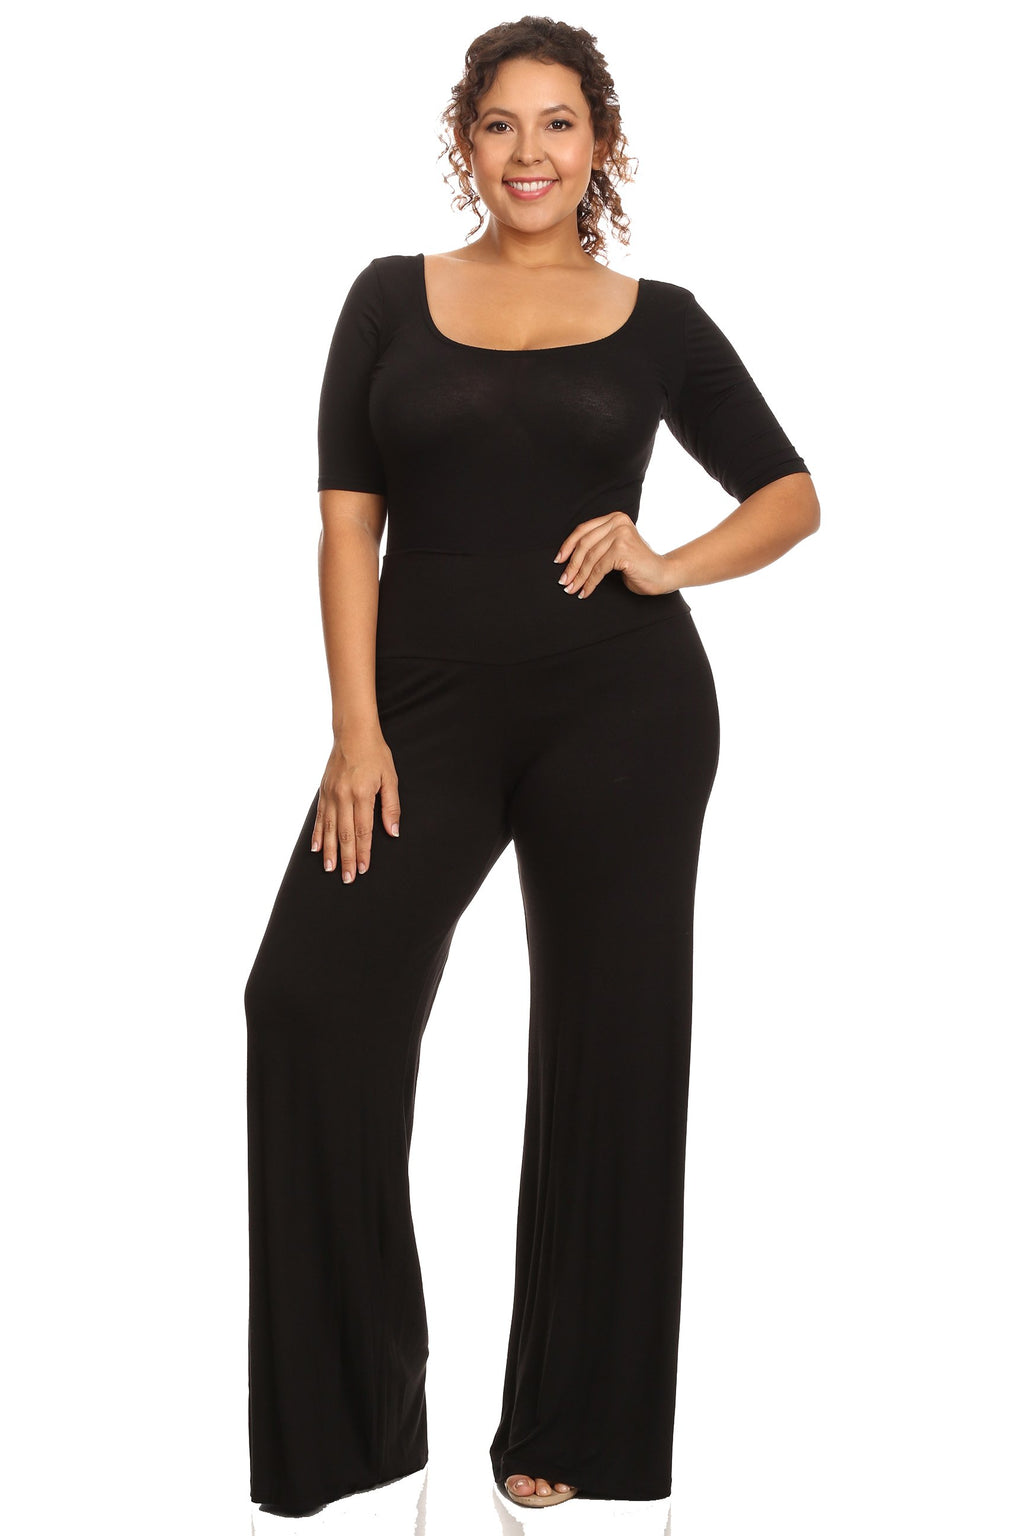 Gorgeous Plus Size Pants - MiKlah